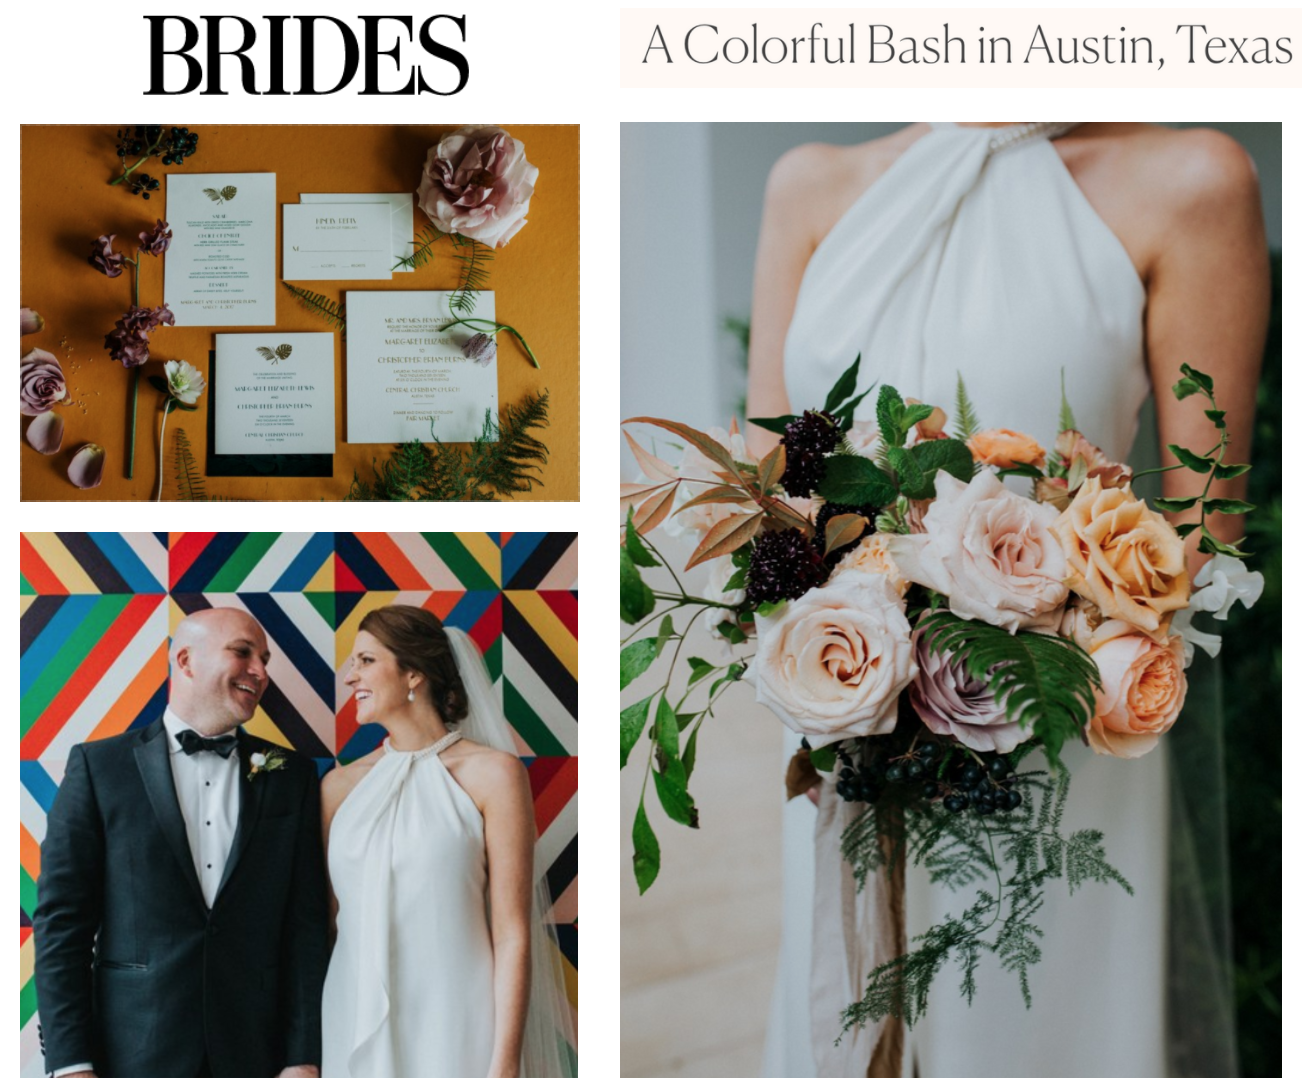 Brides | A Colorful Bash in Austin, Texas | Gypsy Floral and Events